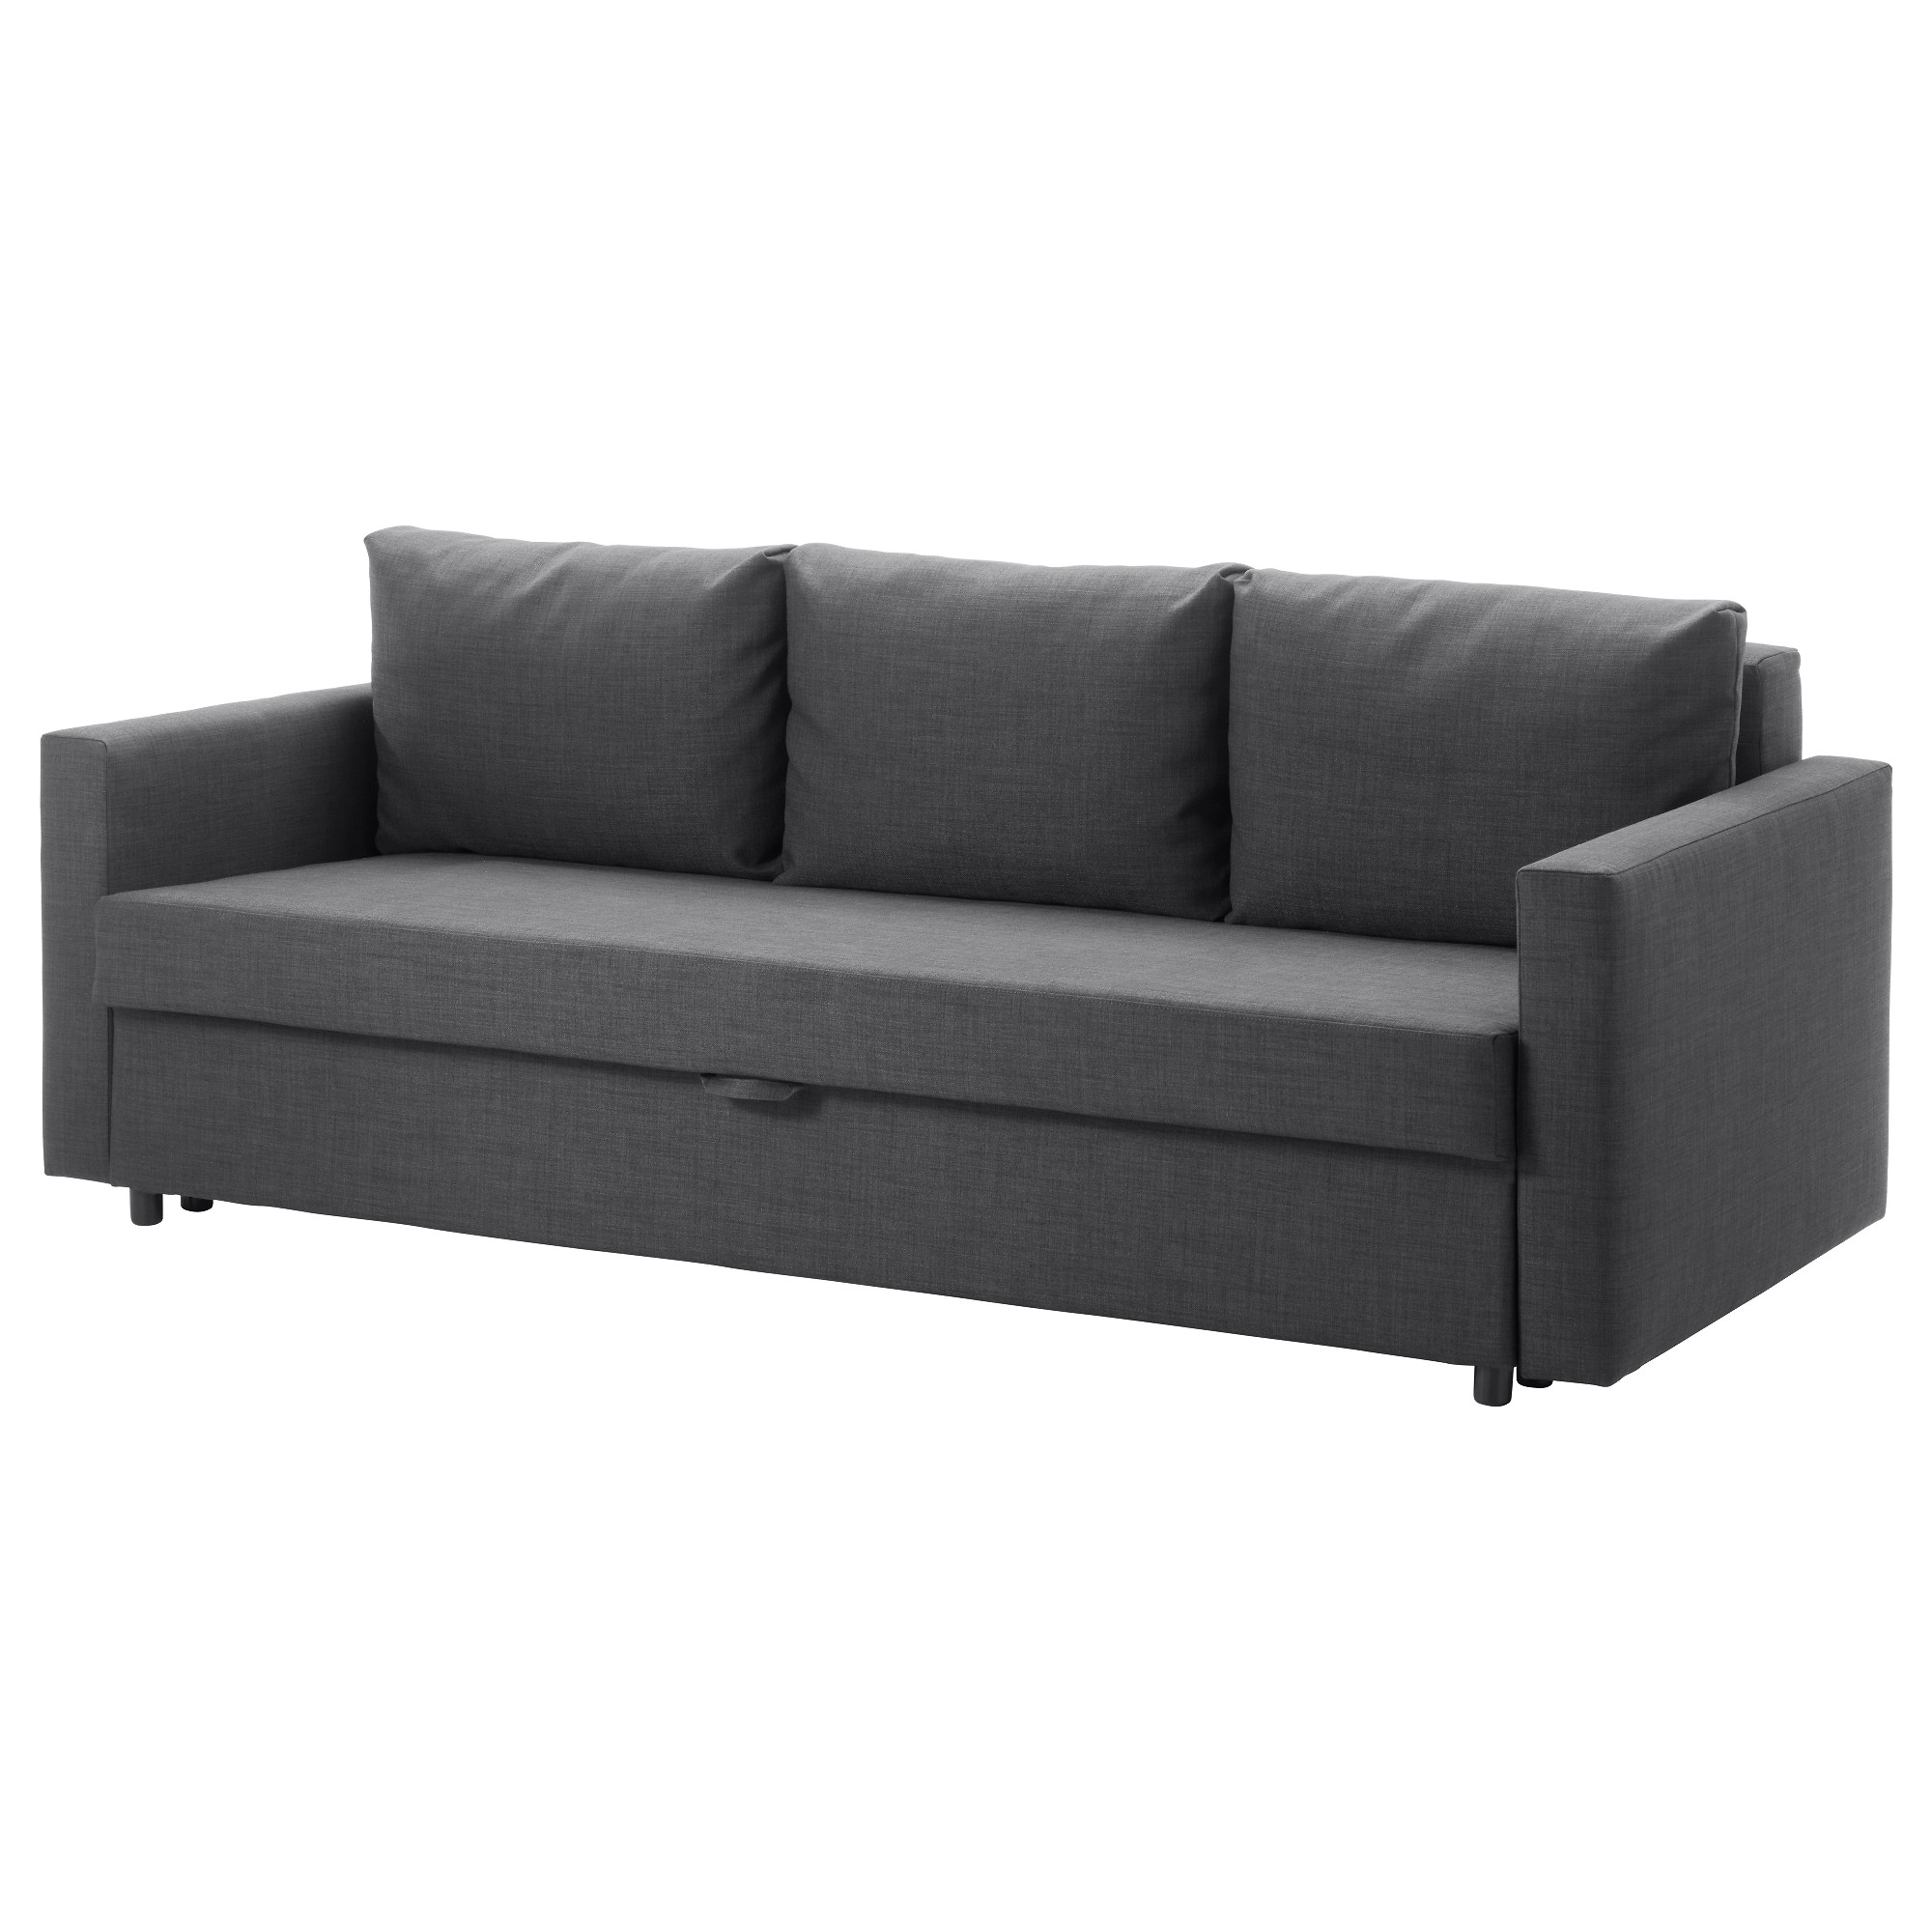 Friheten sof cama 3 plazas for Sofa cama 3 plazas